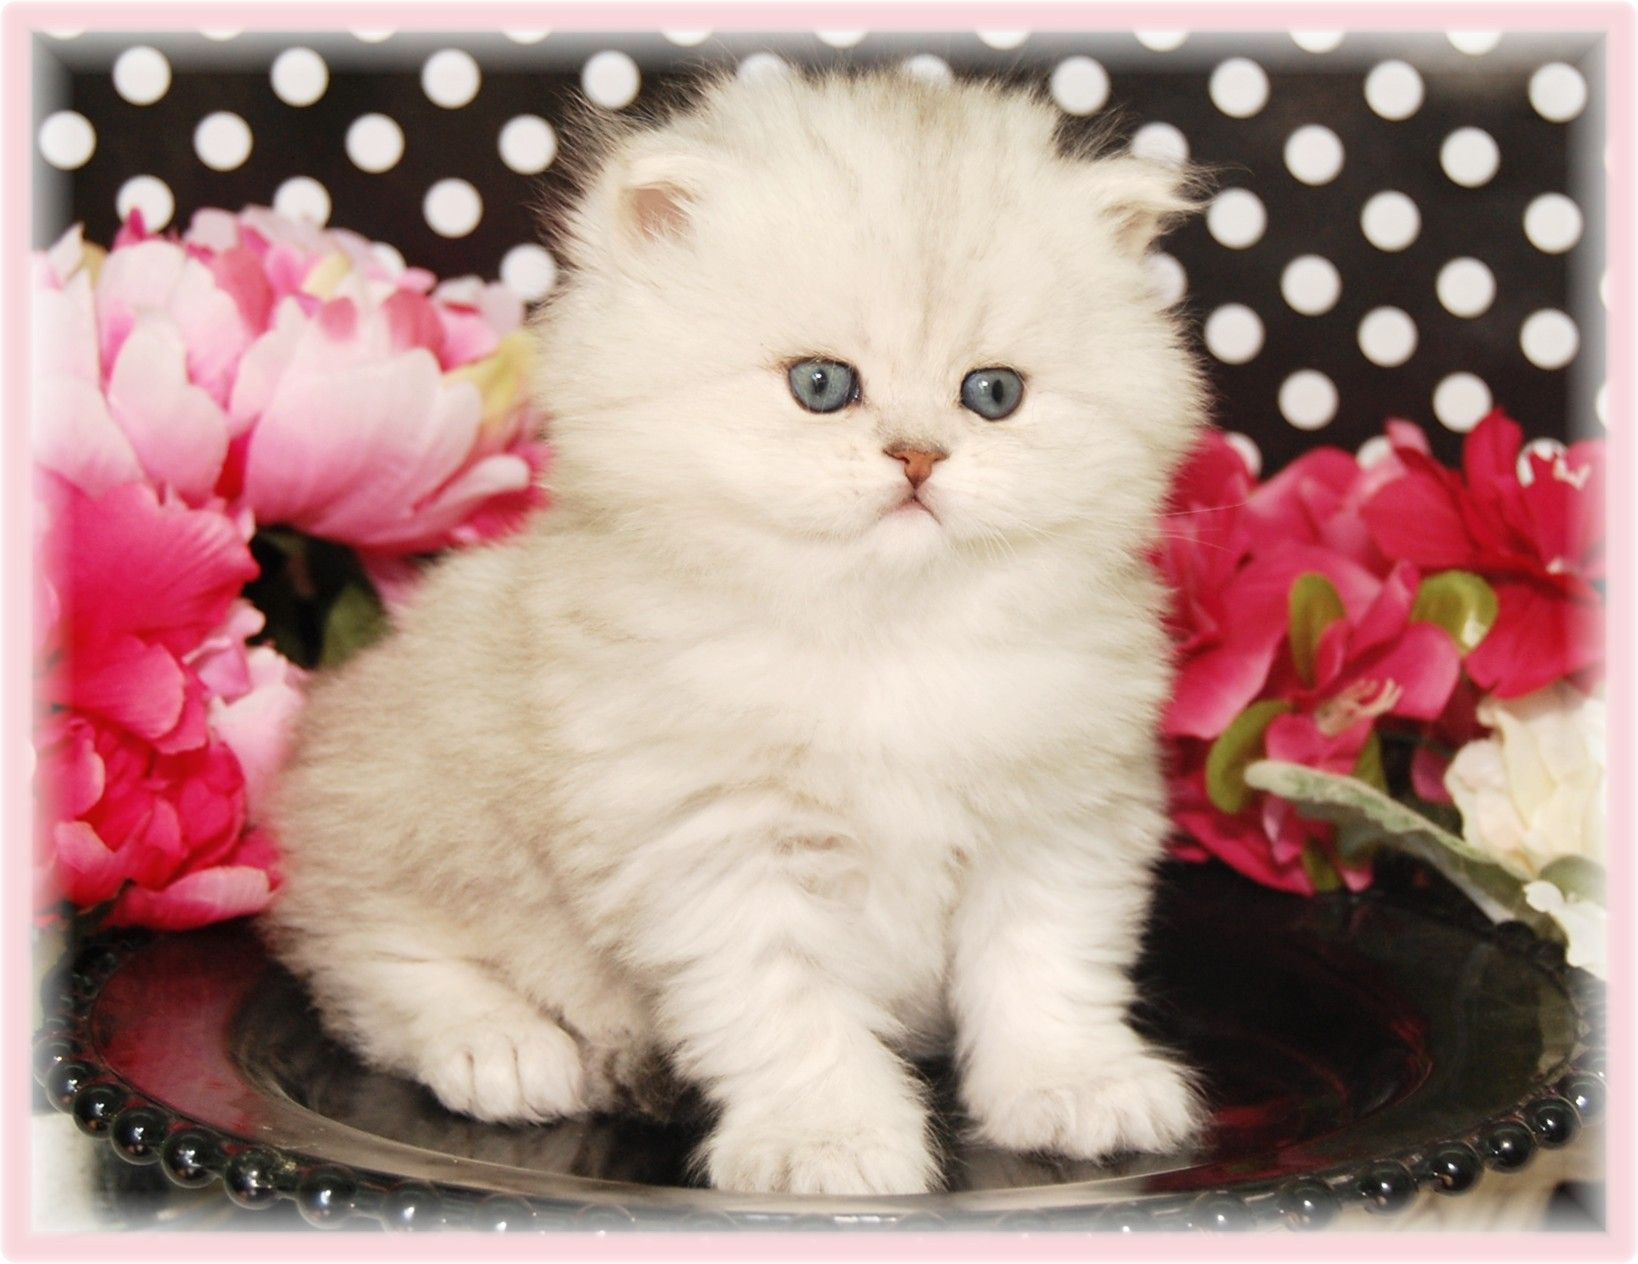 Silver Dolls CatteryTeacup Kittens for sale Teacup